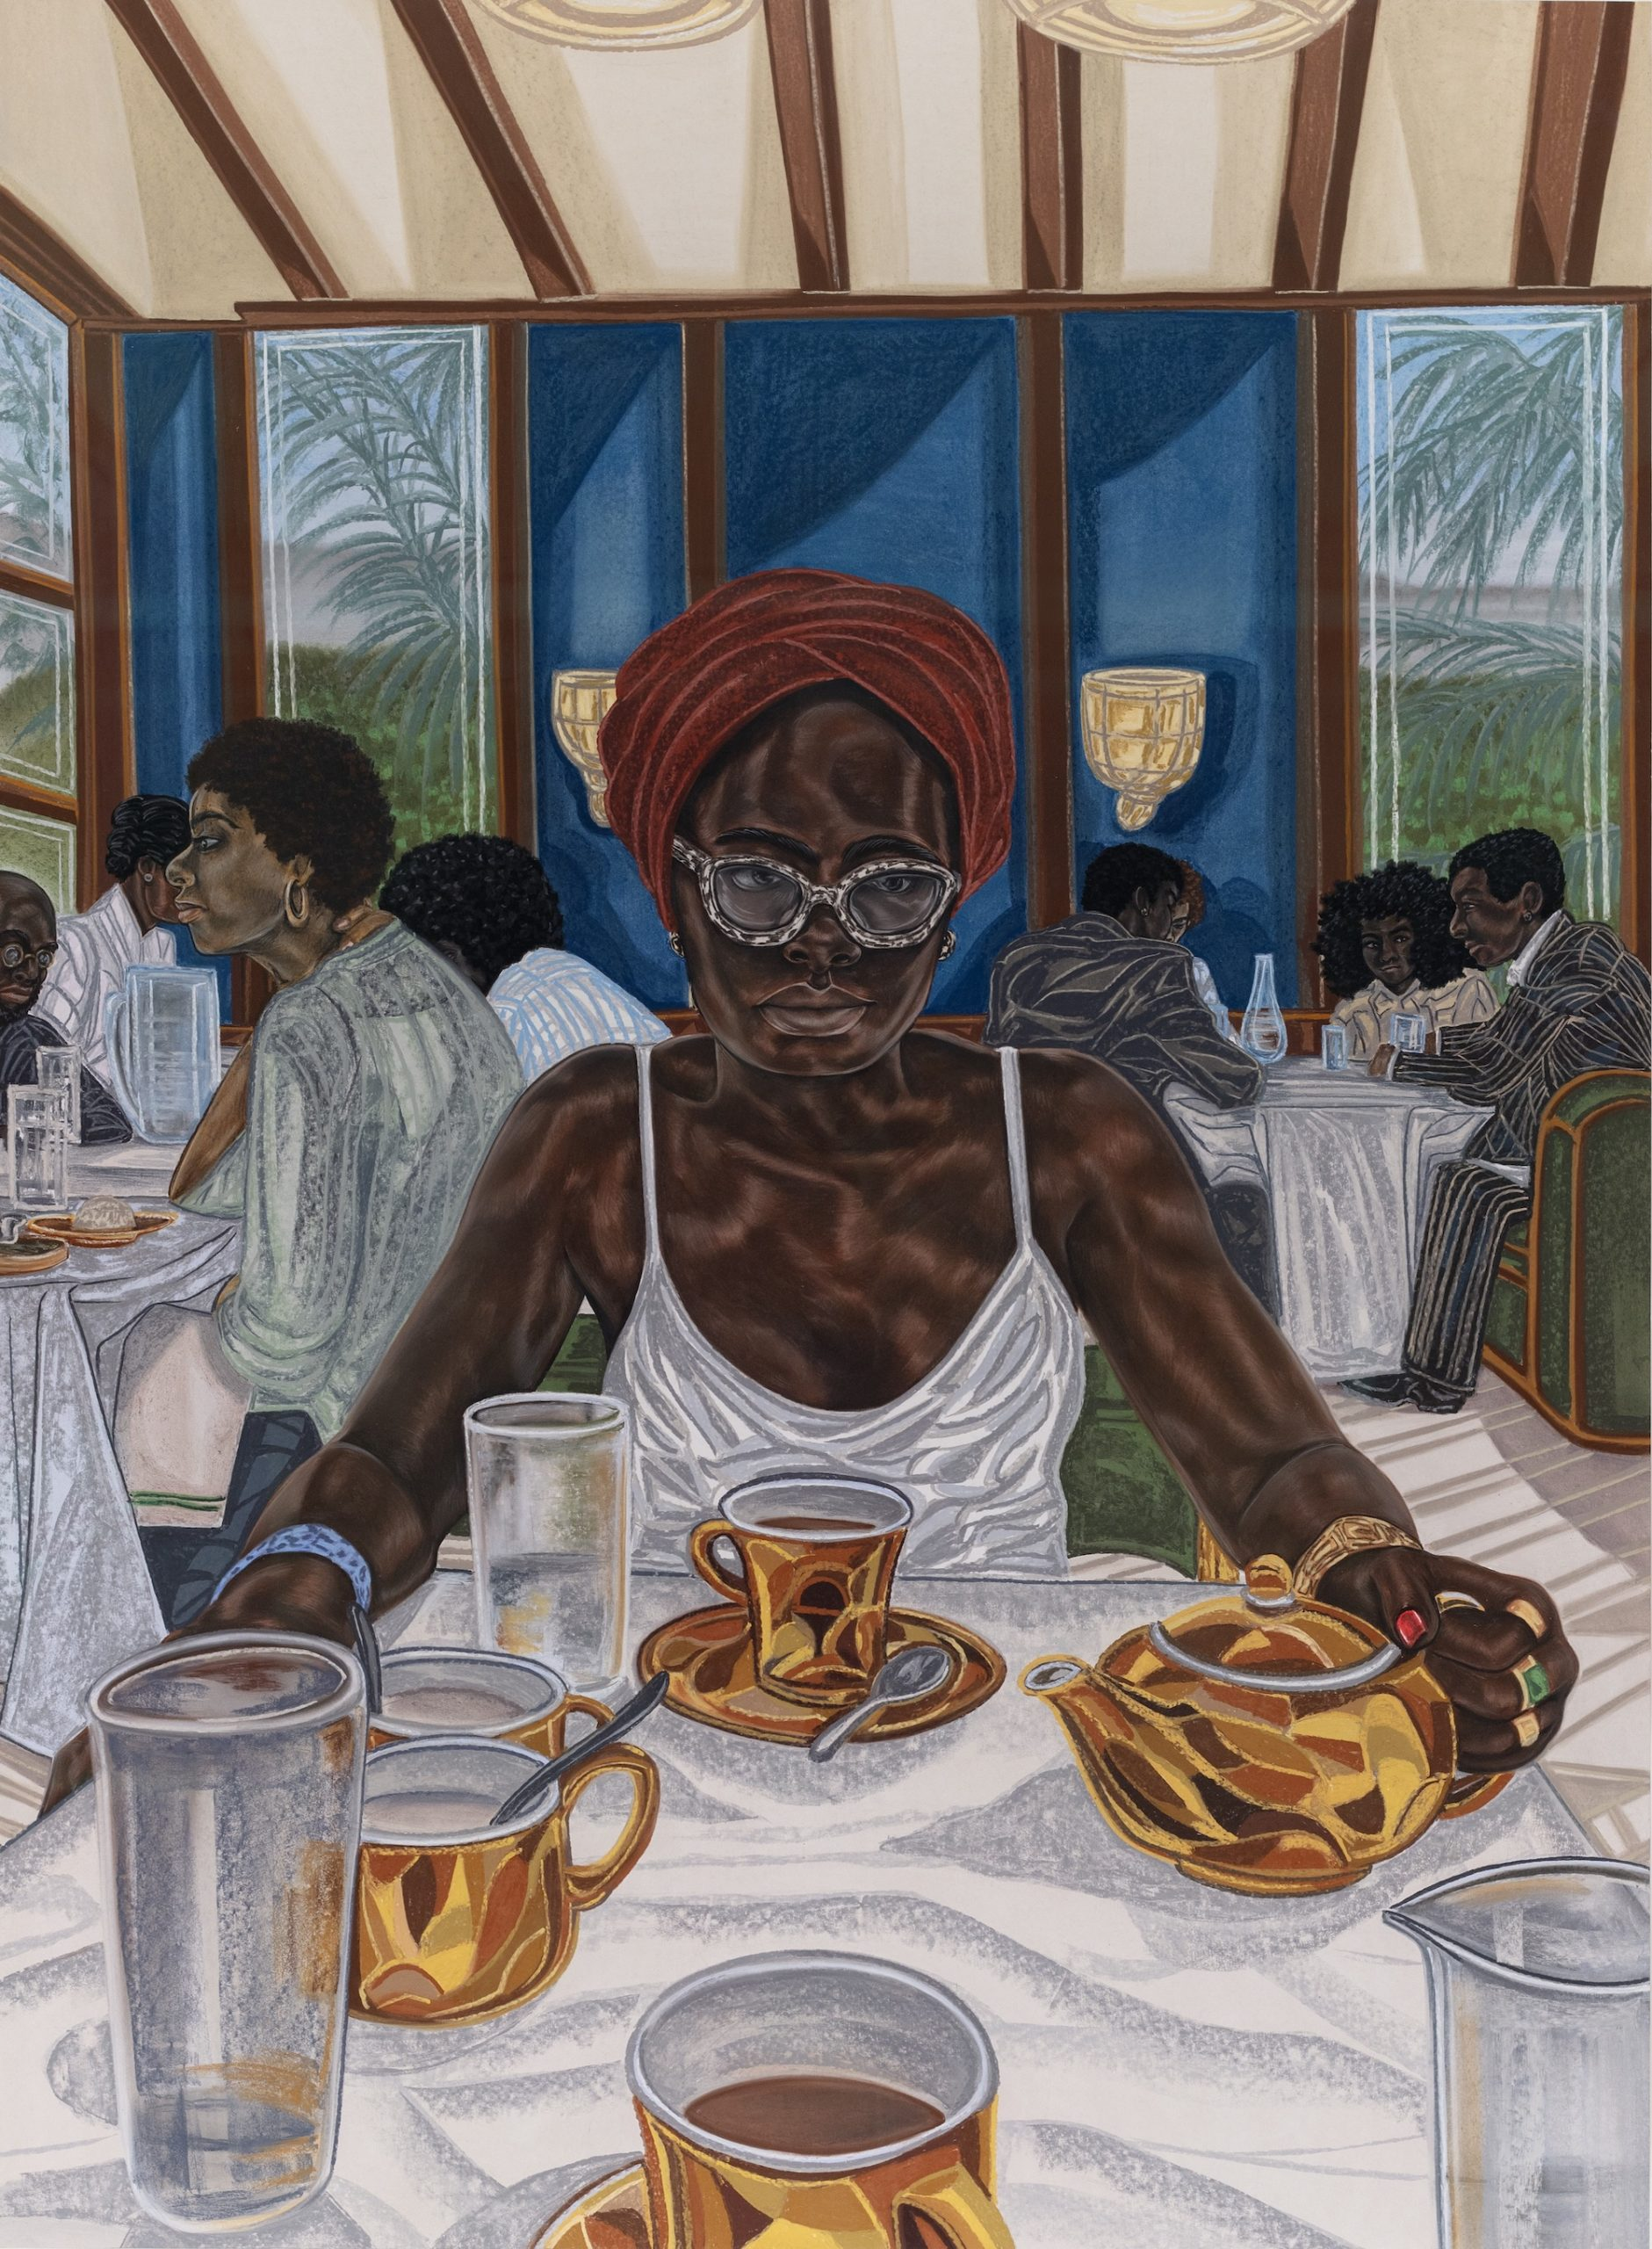 What Her Daughter Sees (2018) © Toyin Ojih Odutola. Courtesy of the artist and Jack Shainman Gallery, New York